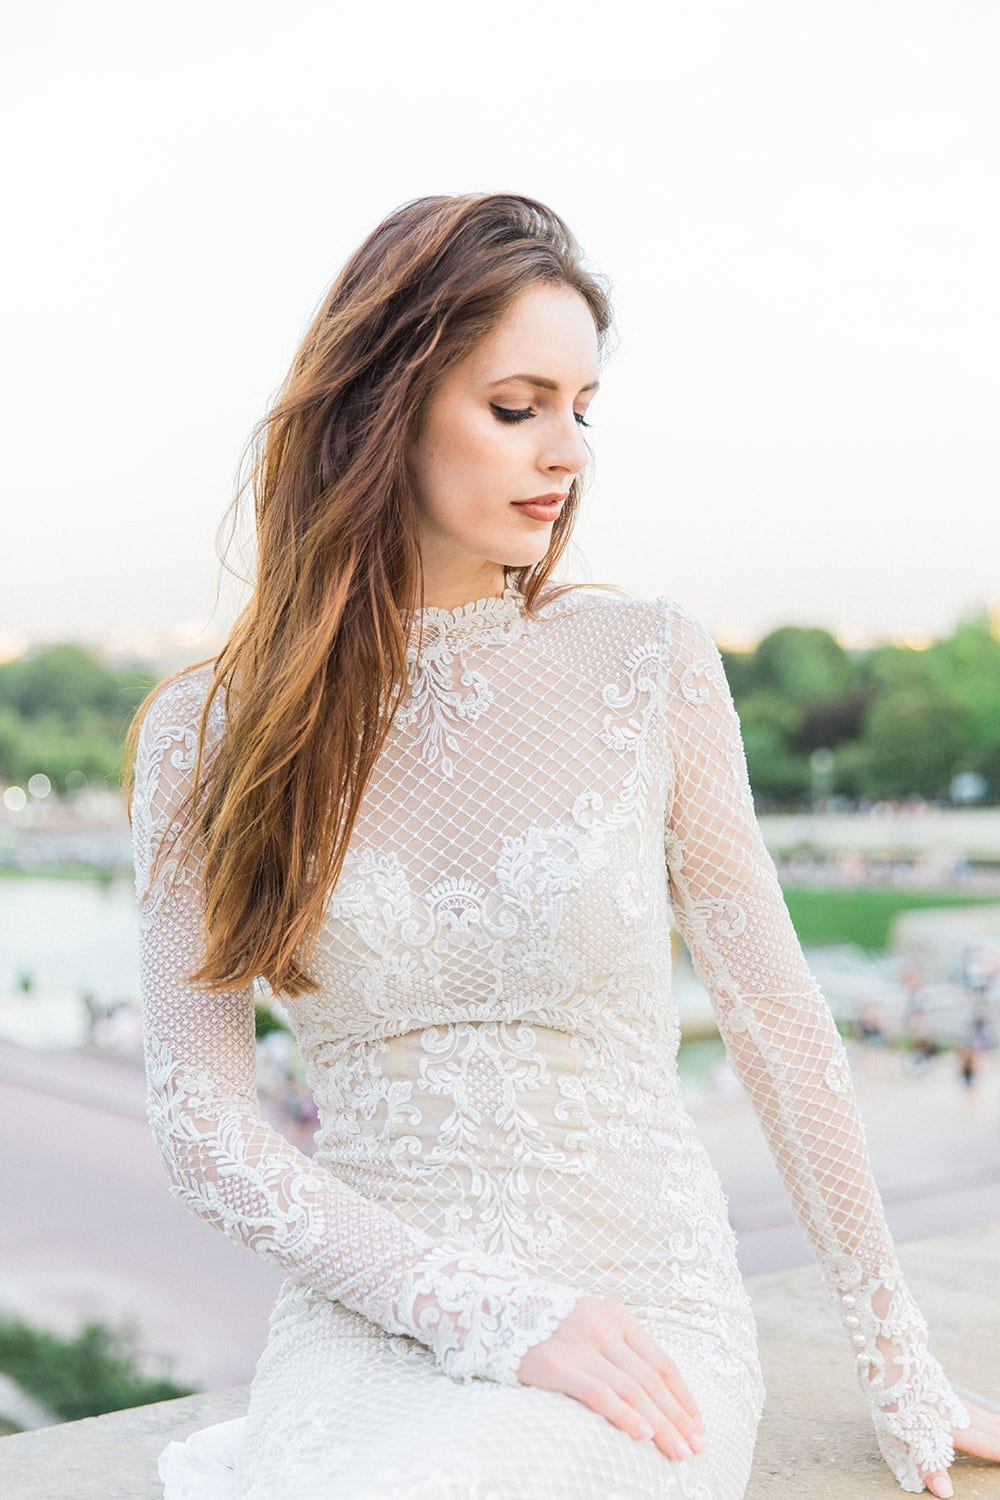 Model wearing Vinka Design Hayley Wedding Dress, a Backless Long Sleeve Lace Wedding Gown sitting outdoors in Paris